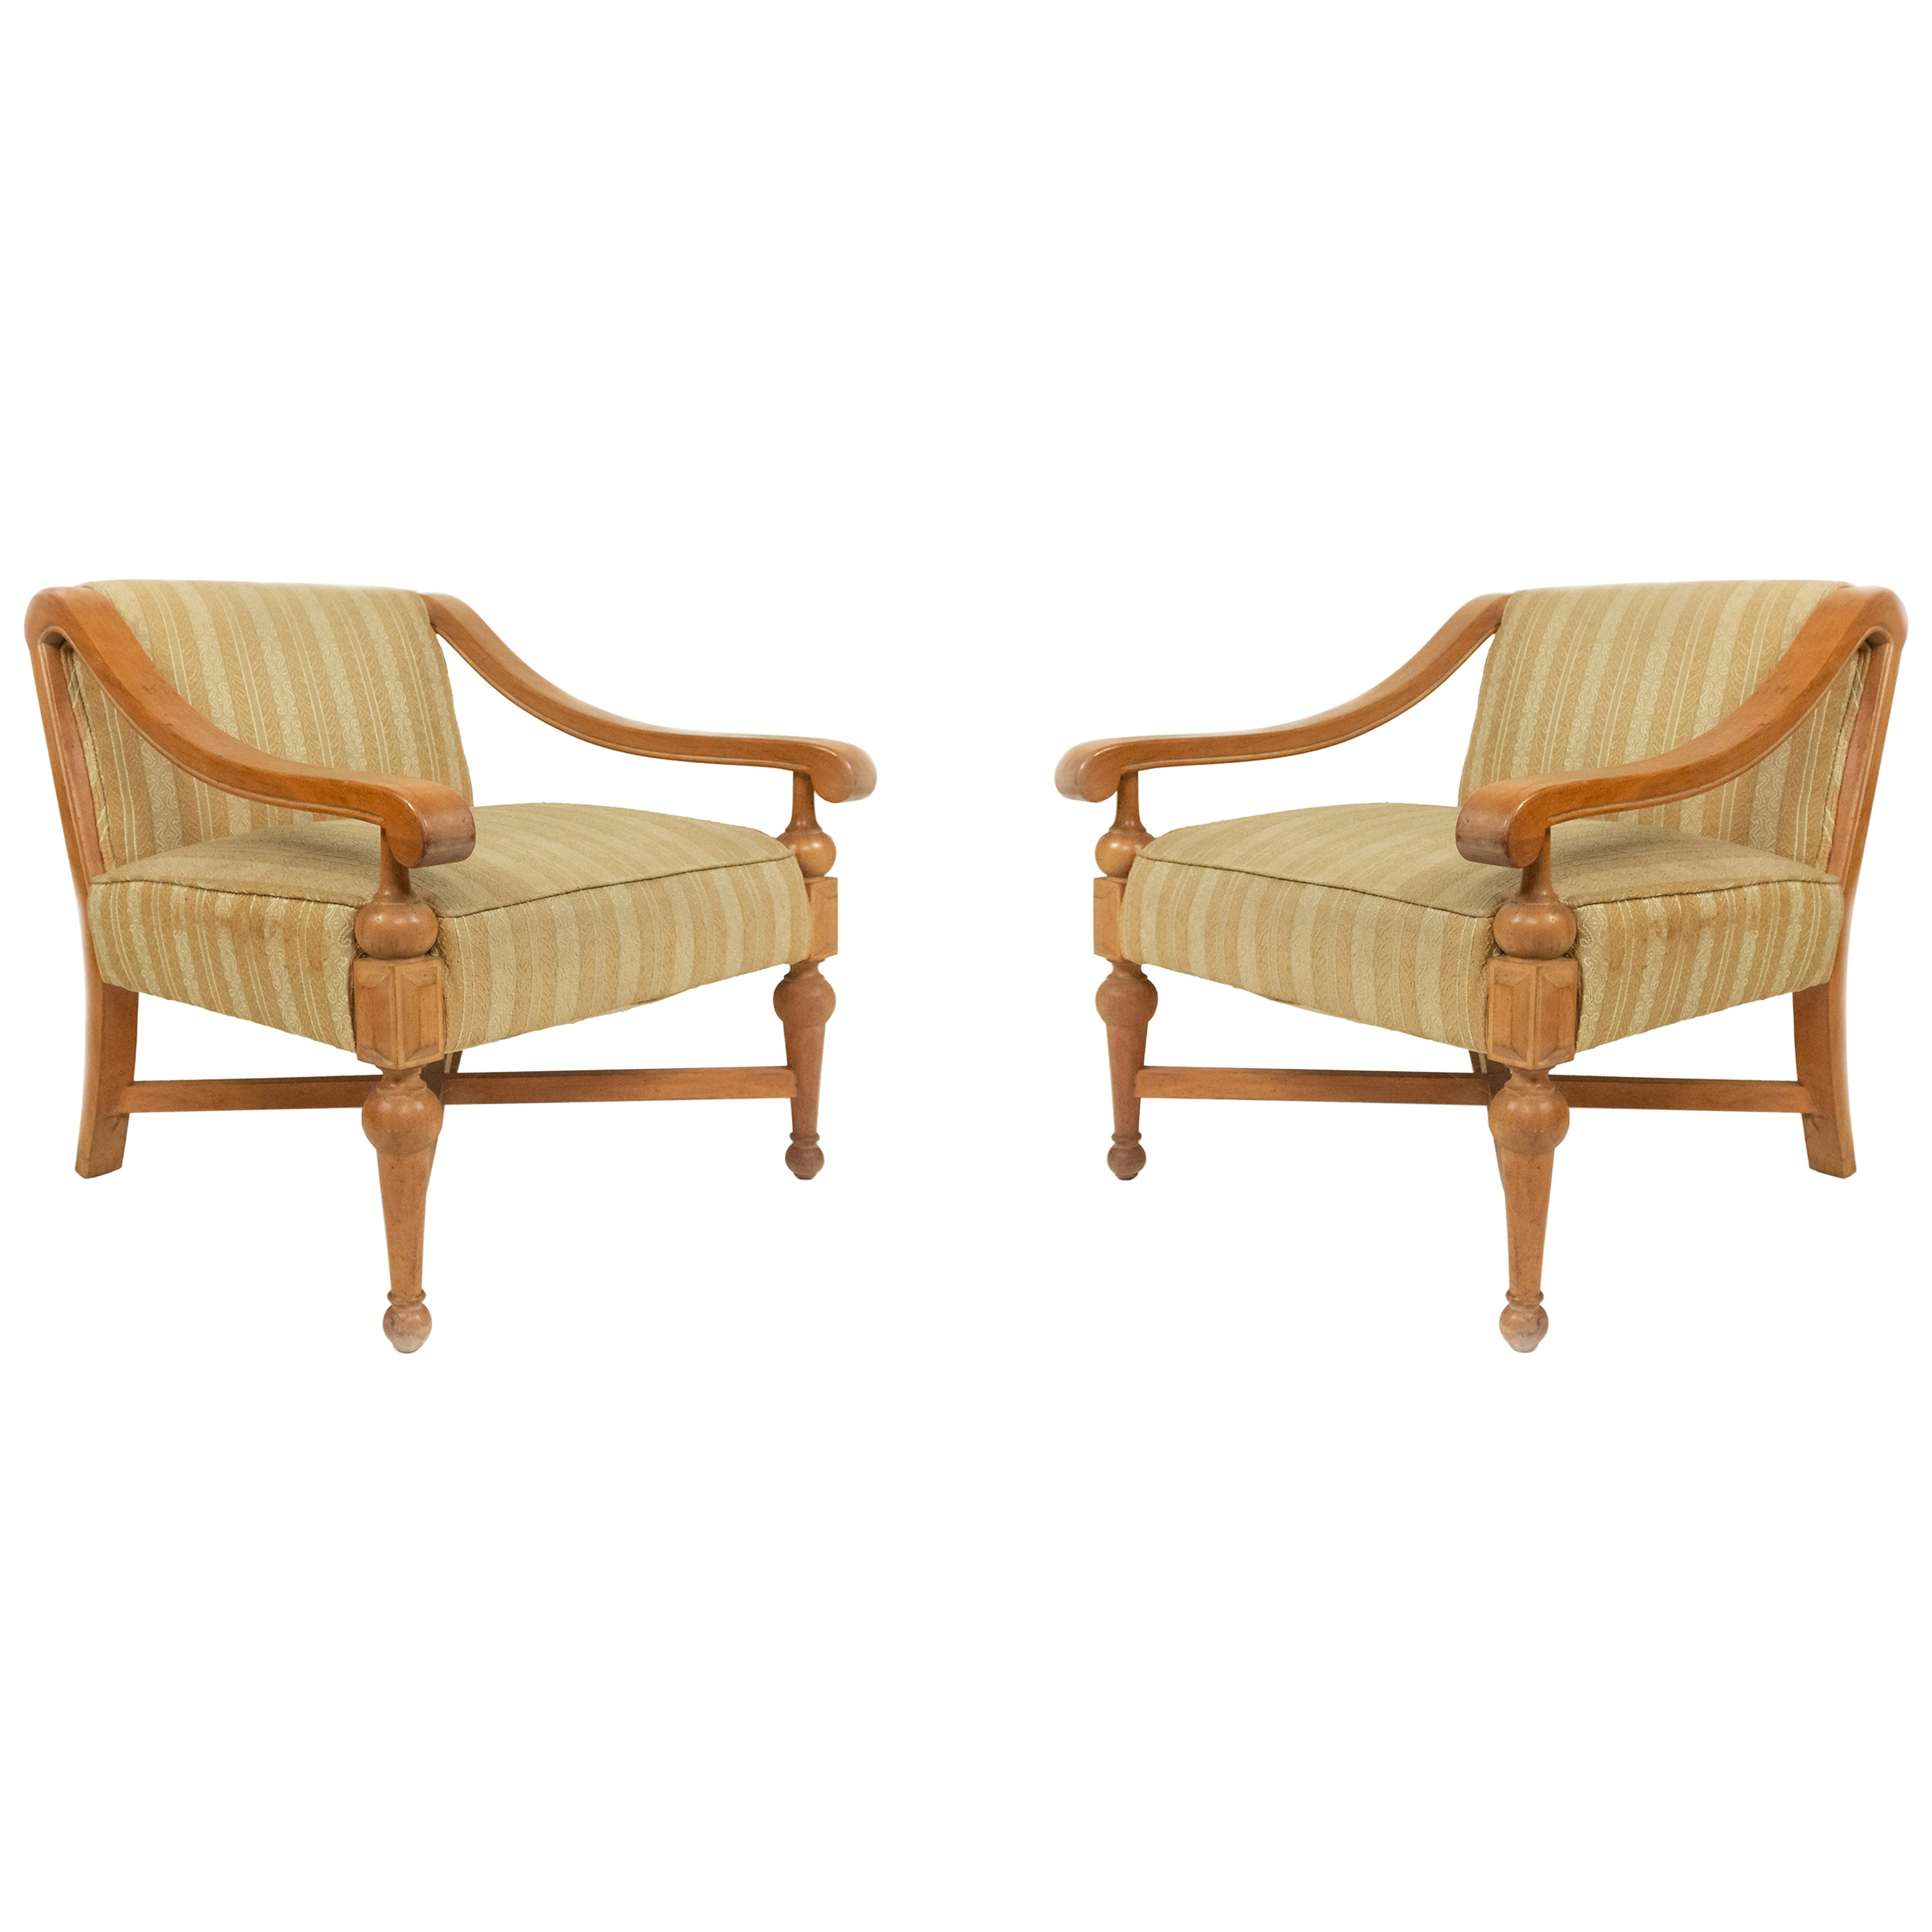 Midcentury Sycamore Upholstered Armchairs